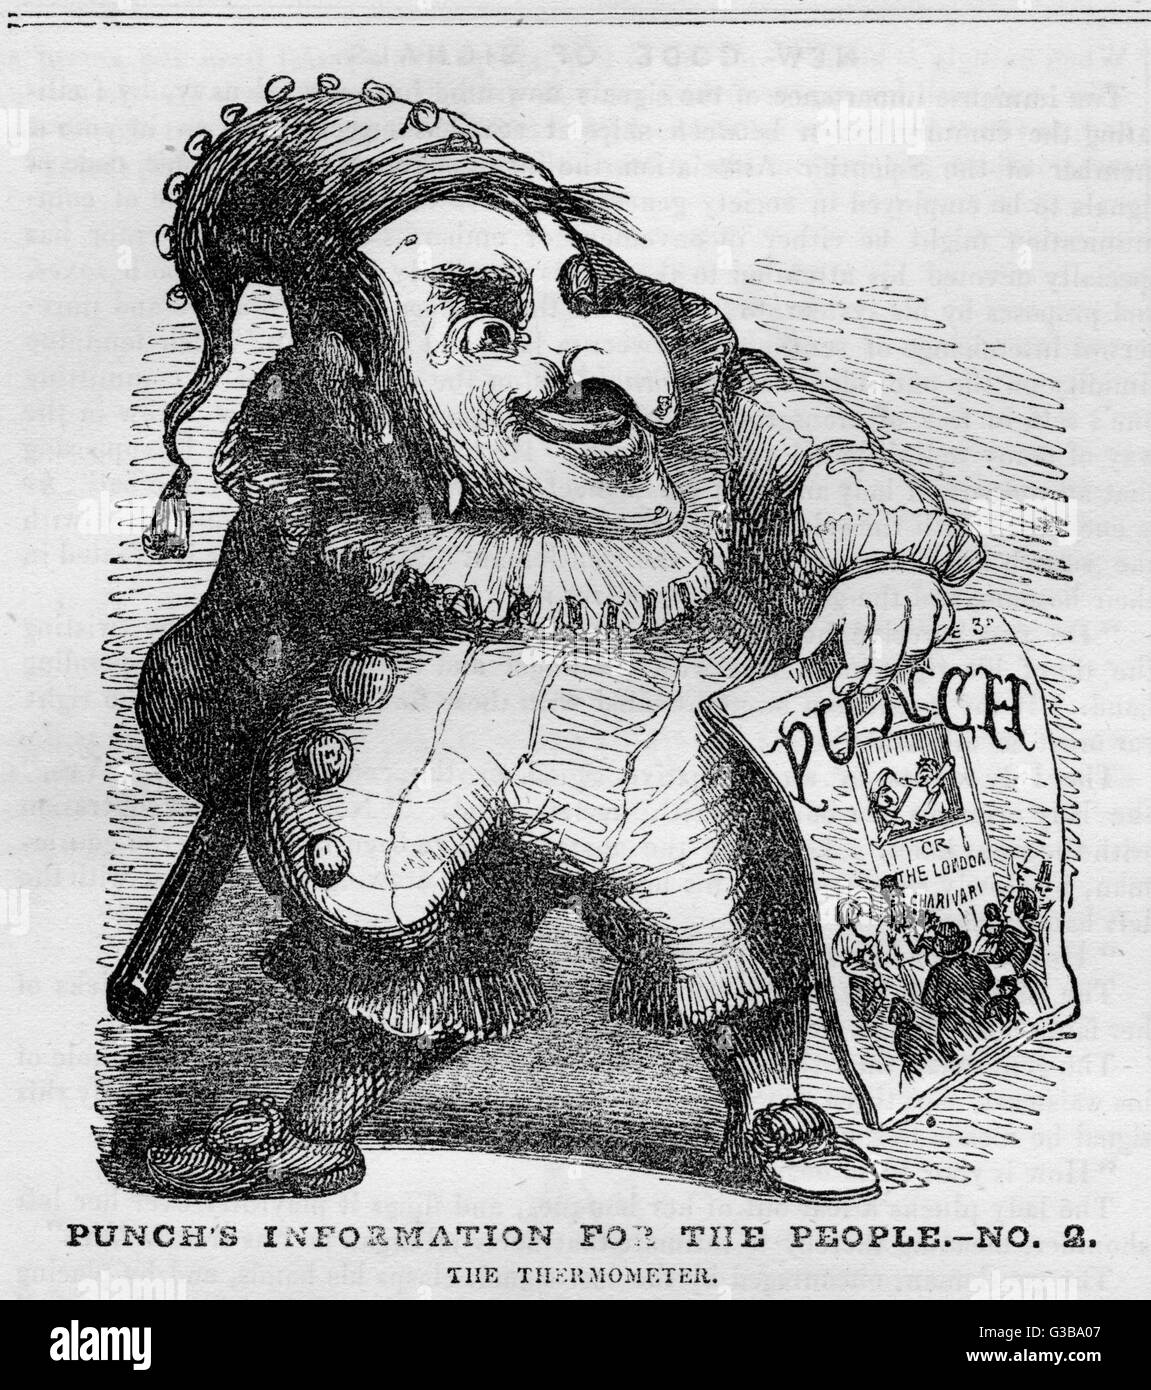 The Mister Punch character  holding a copy of the first  issue of Punch magazine        Date: 1841 - Stock Image